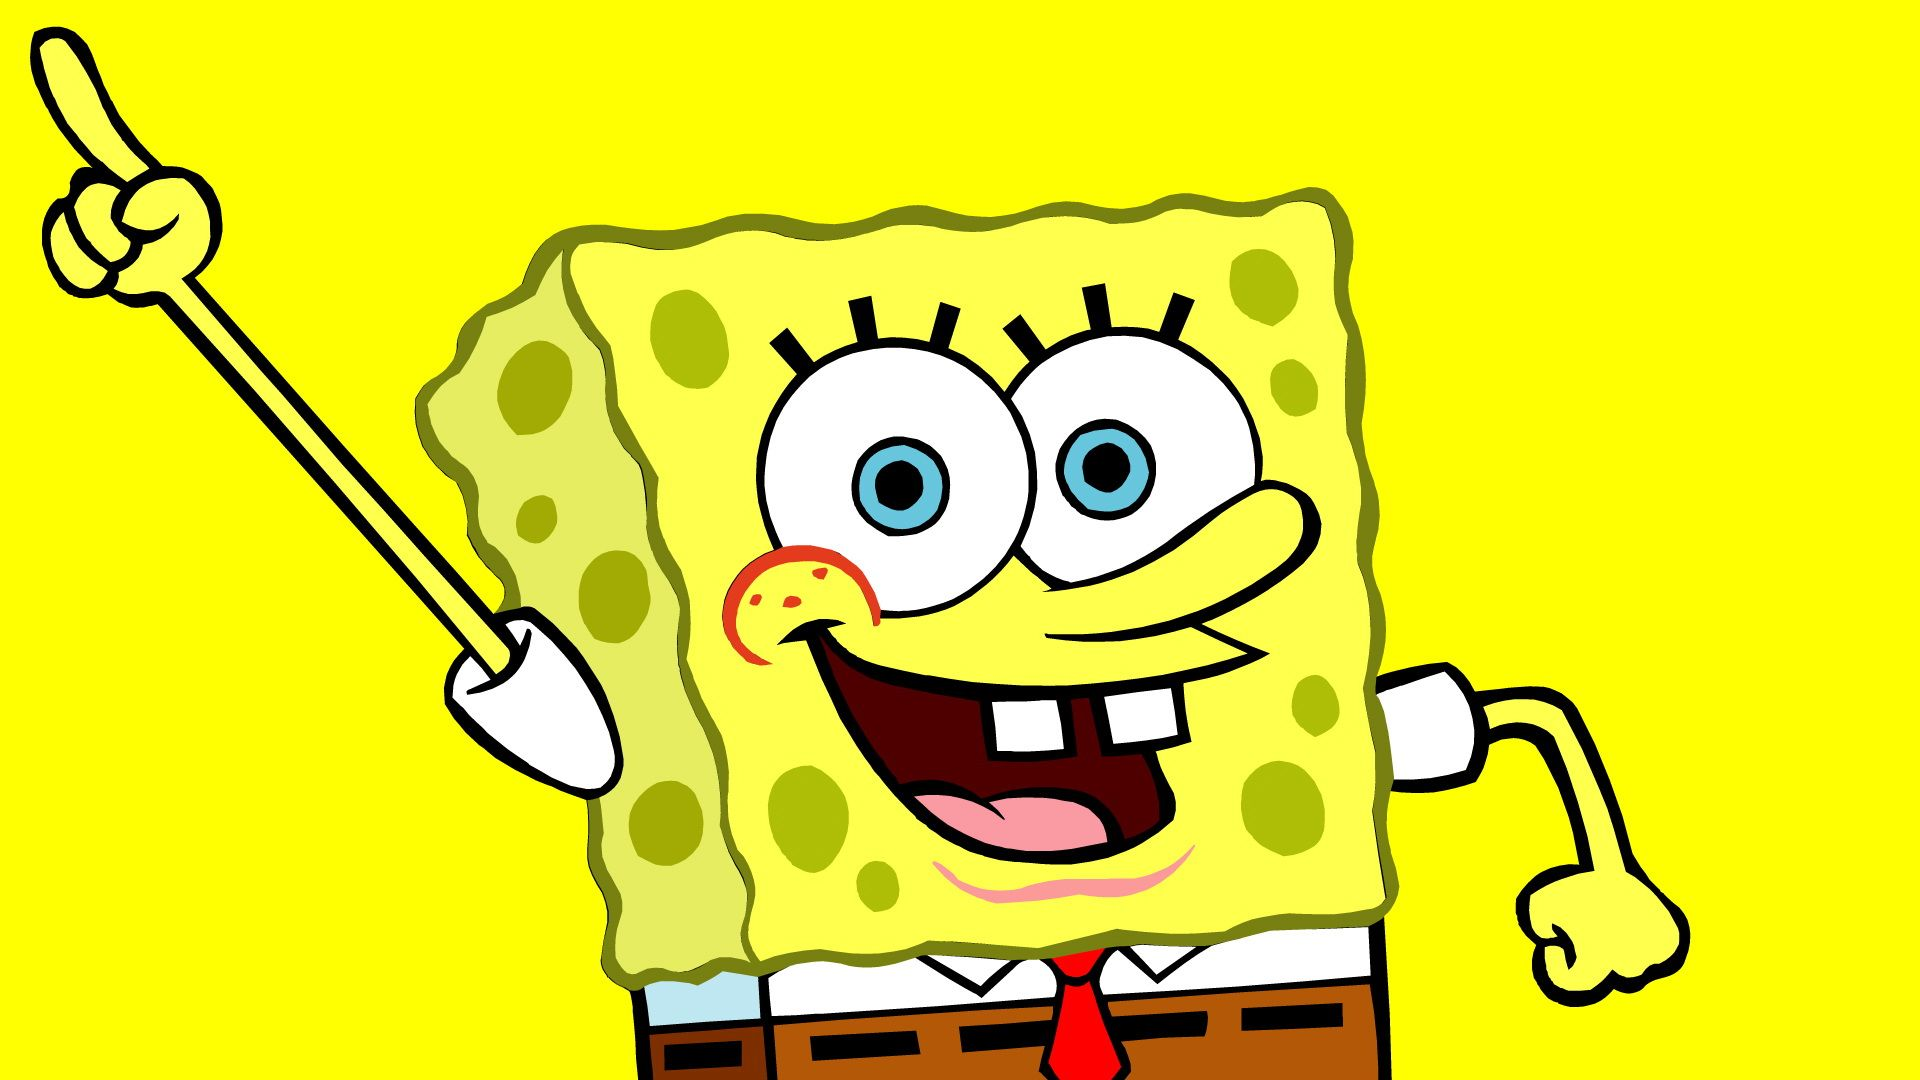 sponge bob hd wallpapers and backgrounds | hd wallpapers